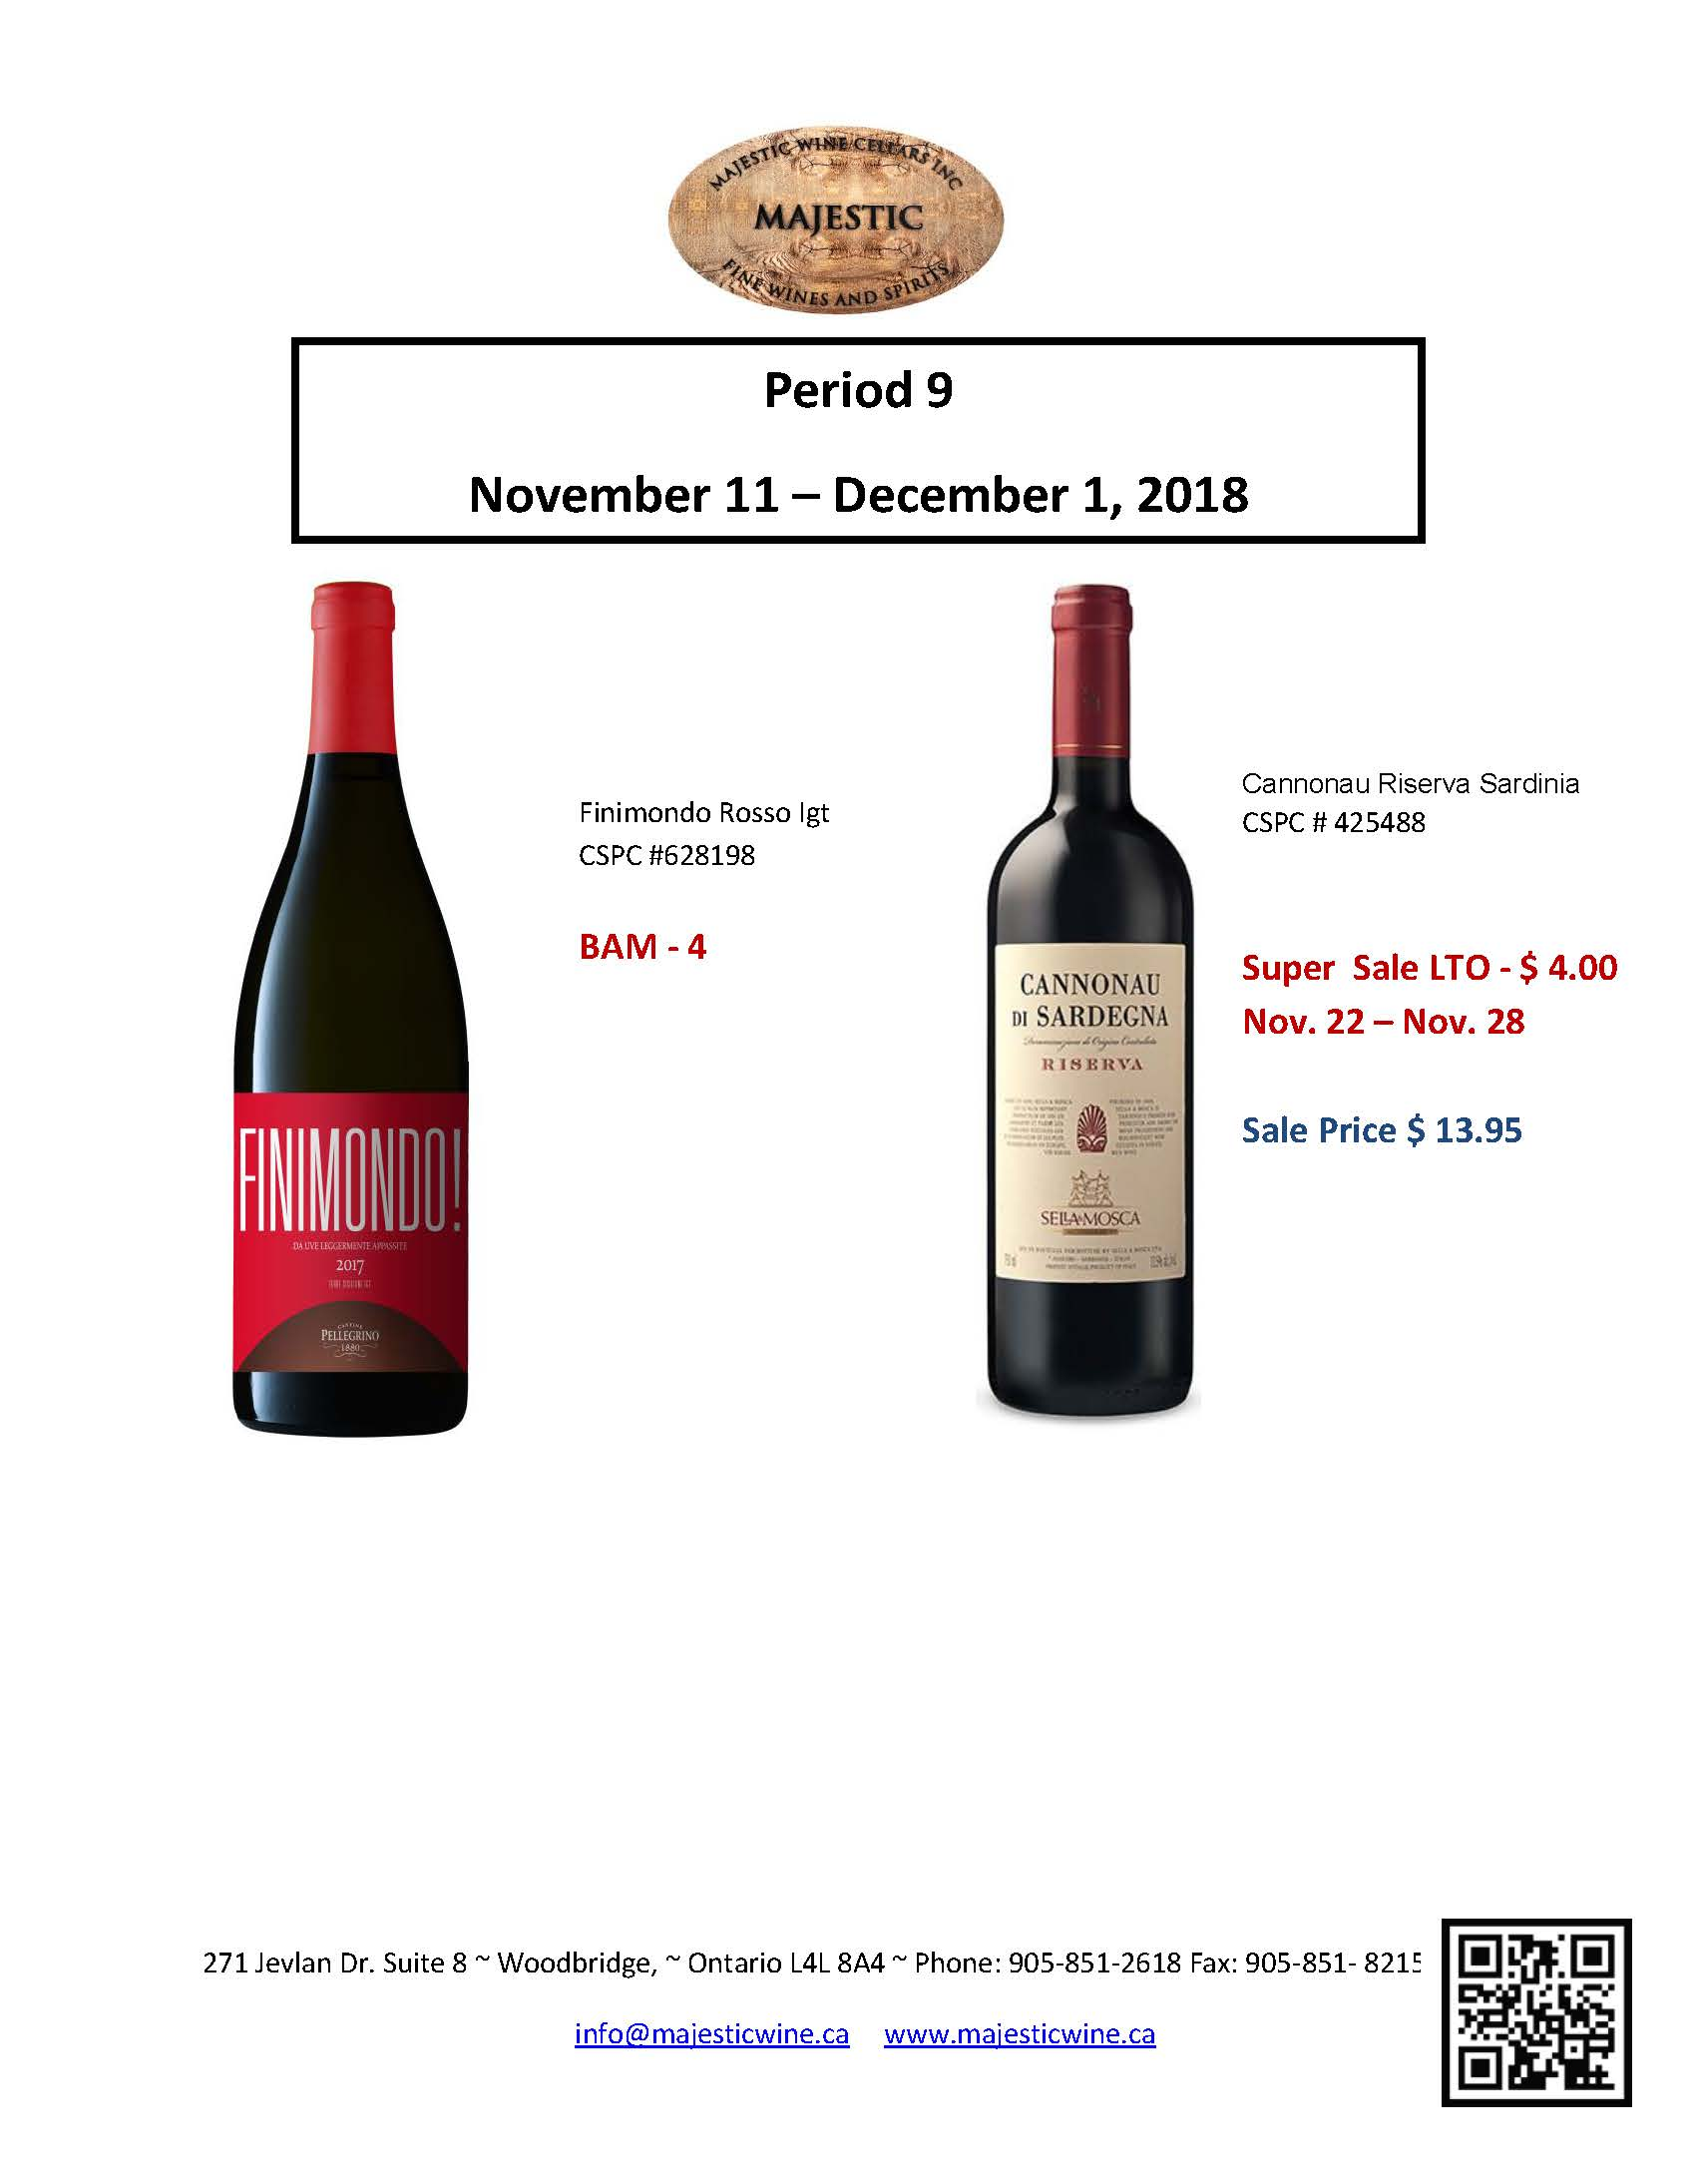 Period 9 - November 11th - December 1st Promotion